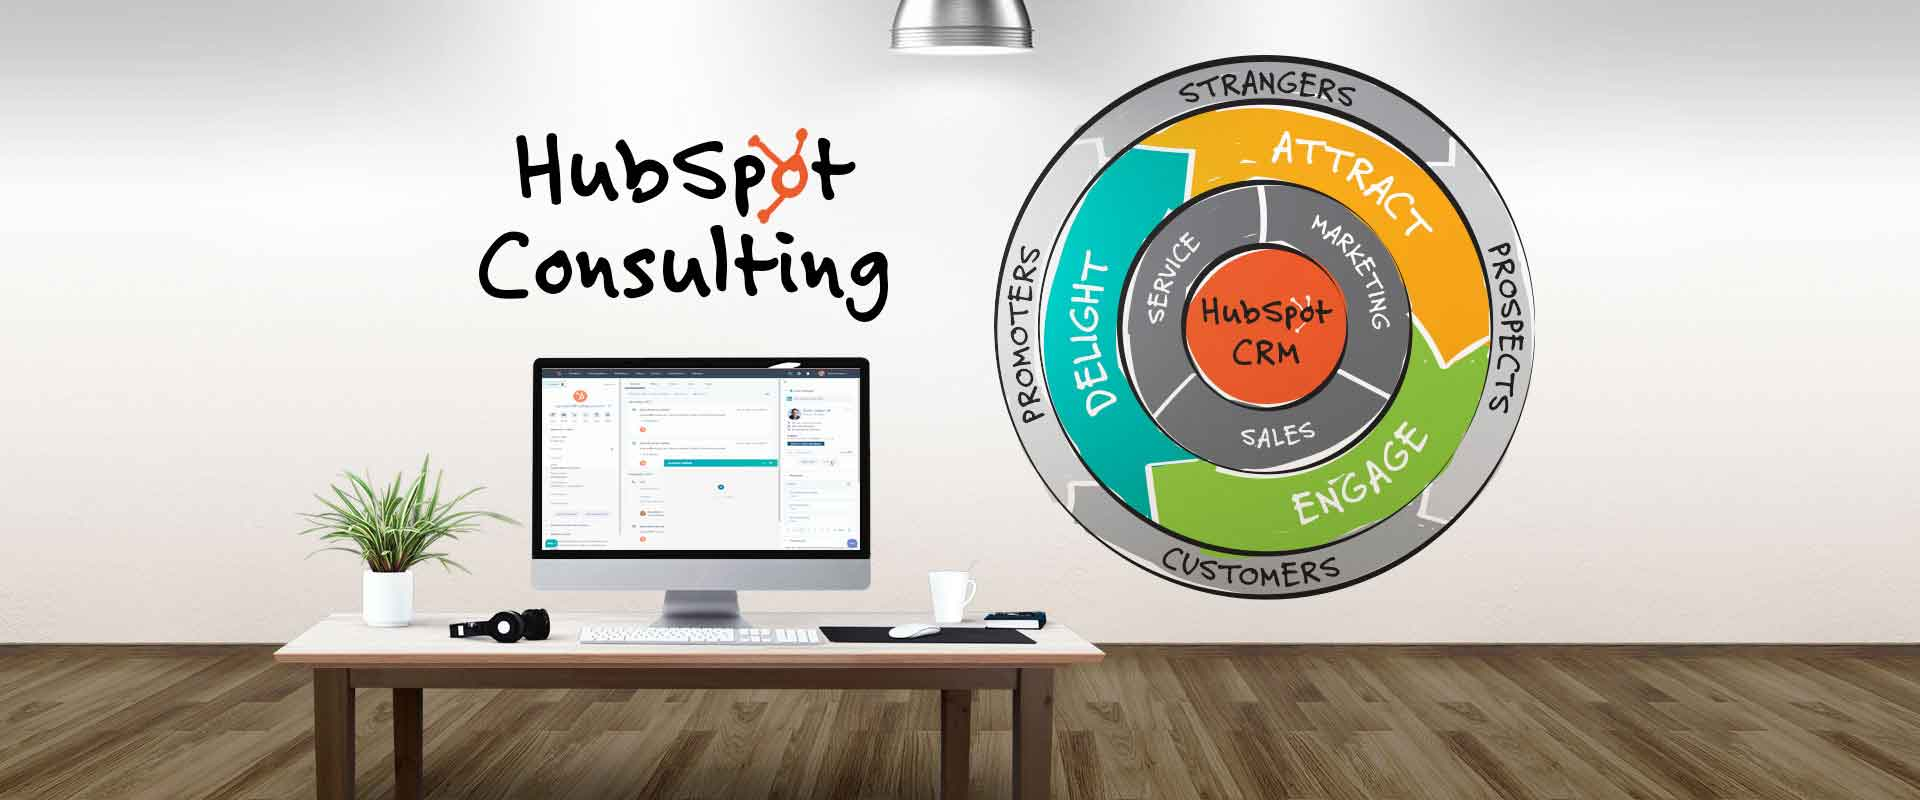 HubSpot-Consulting-Banner-1